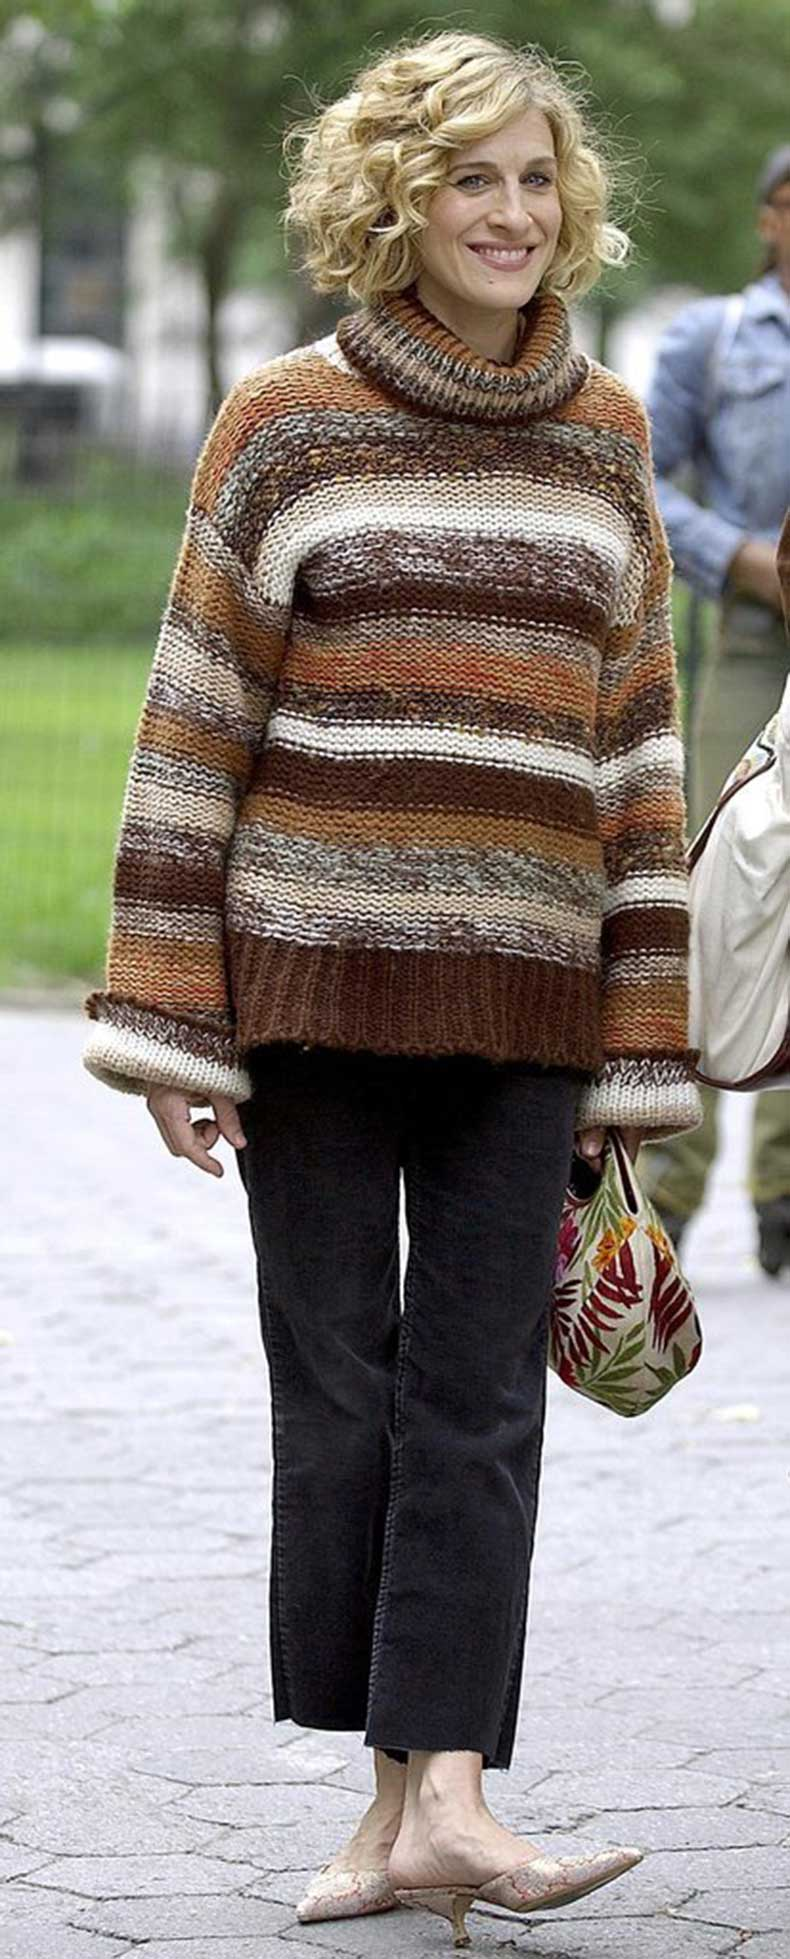 Oversize-Knit-Doesnt-Have-Feel-Bulky